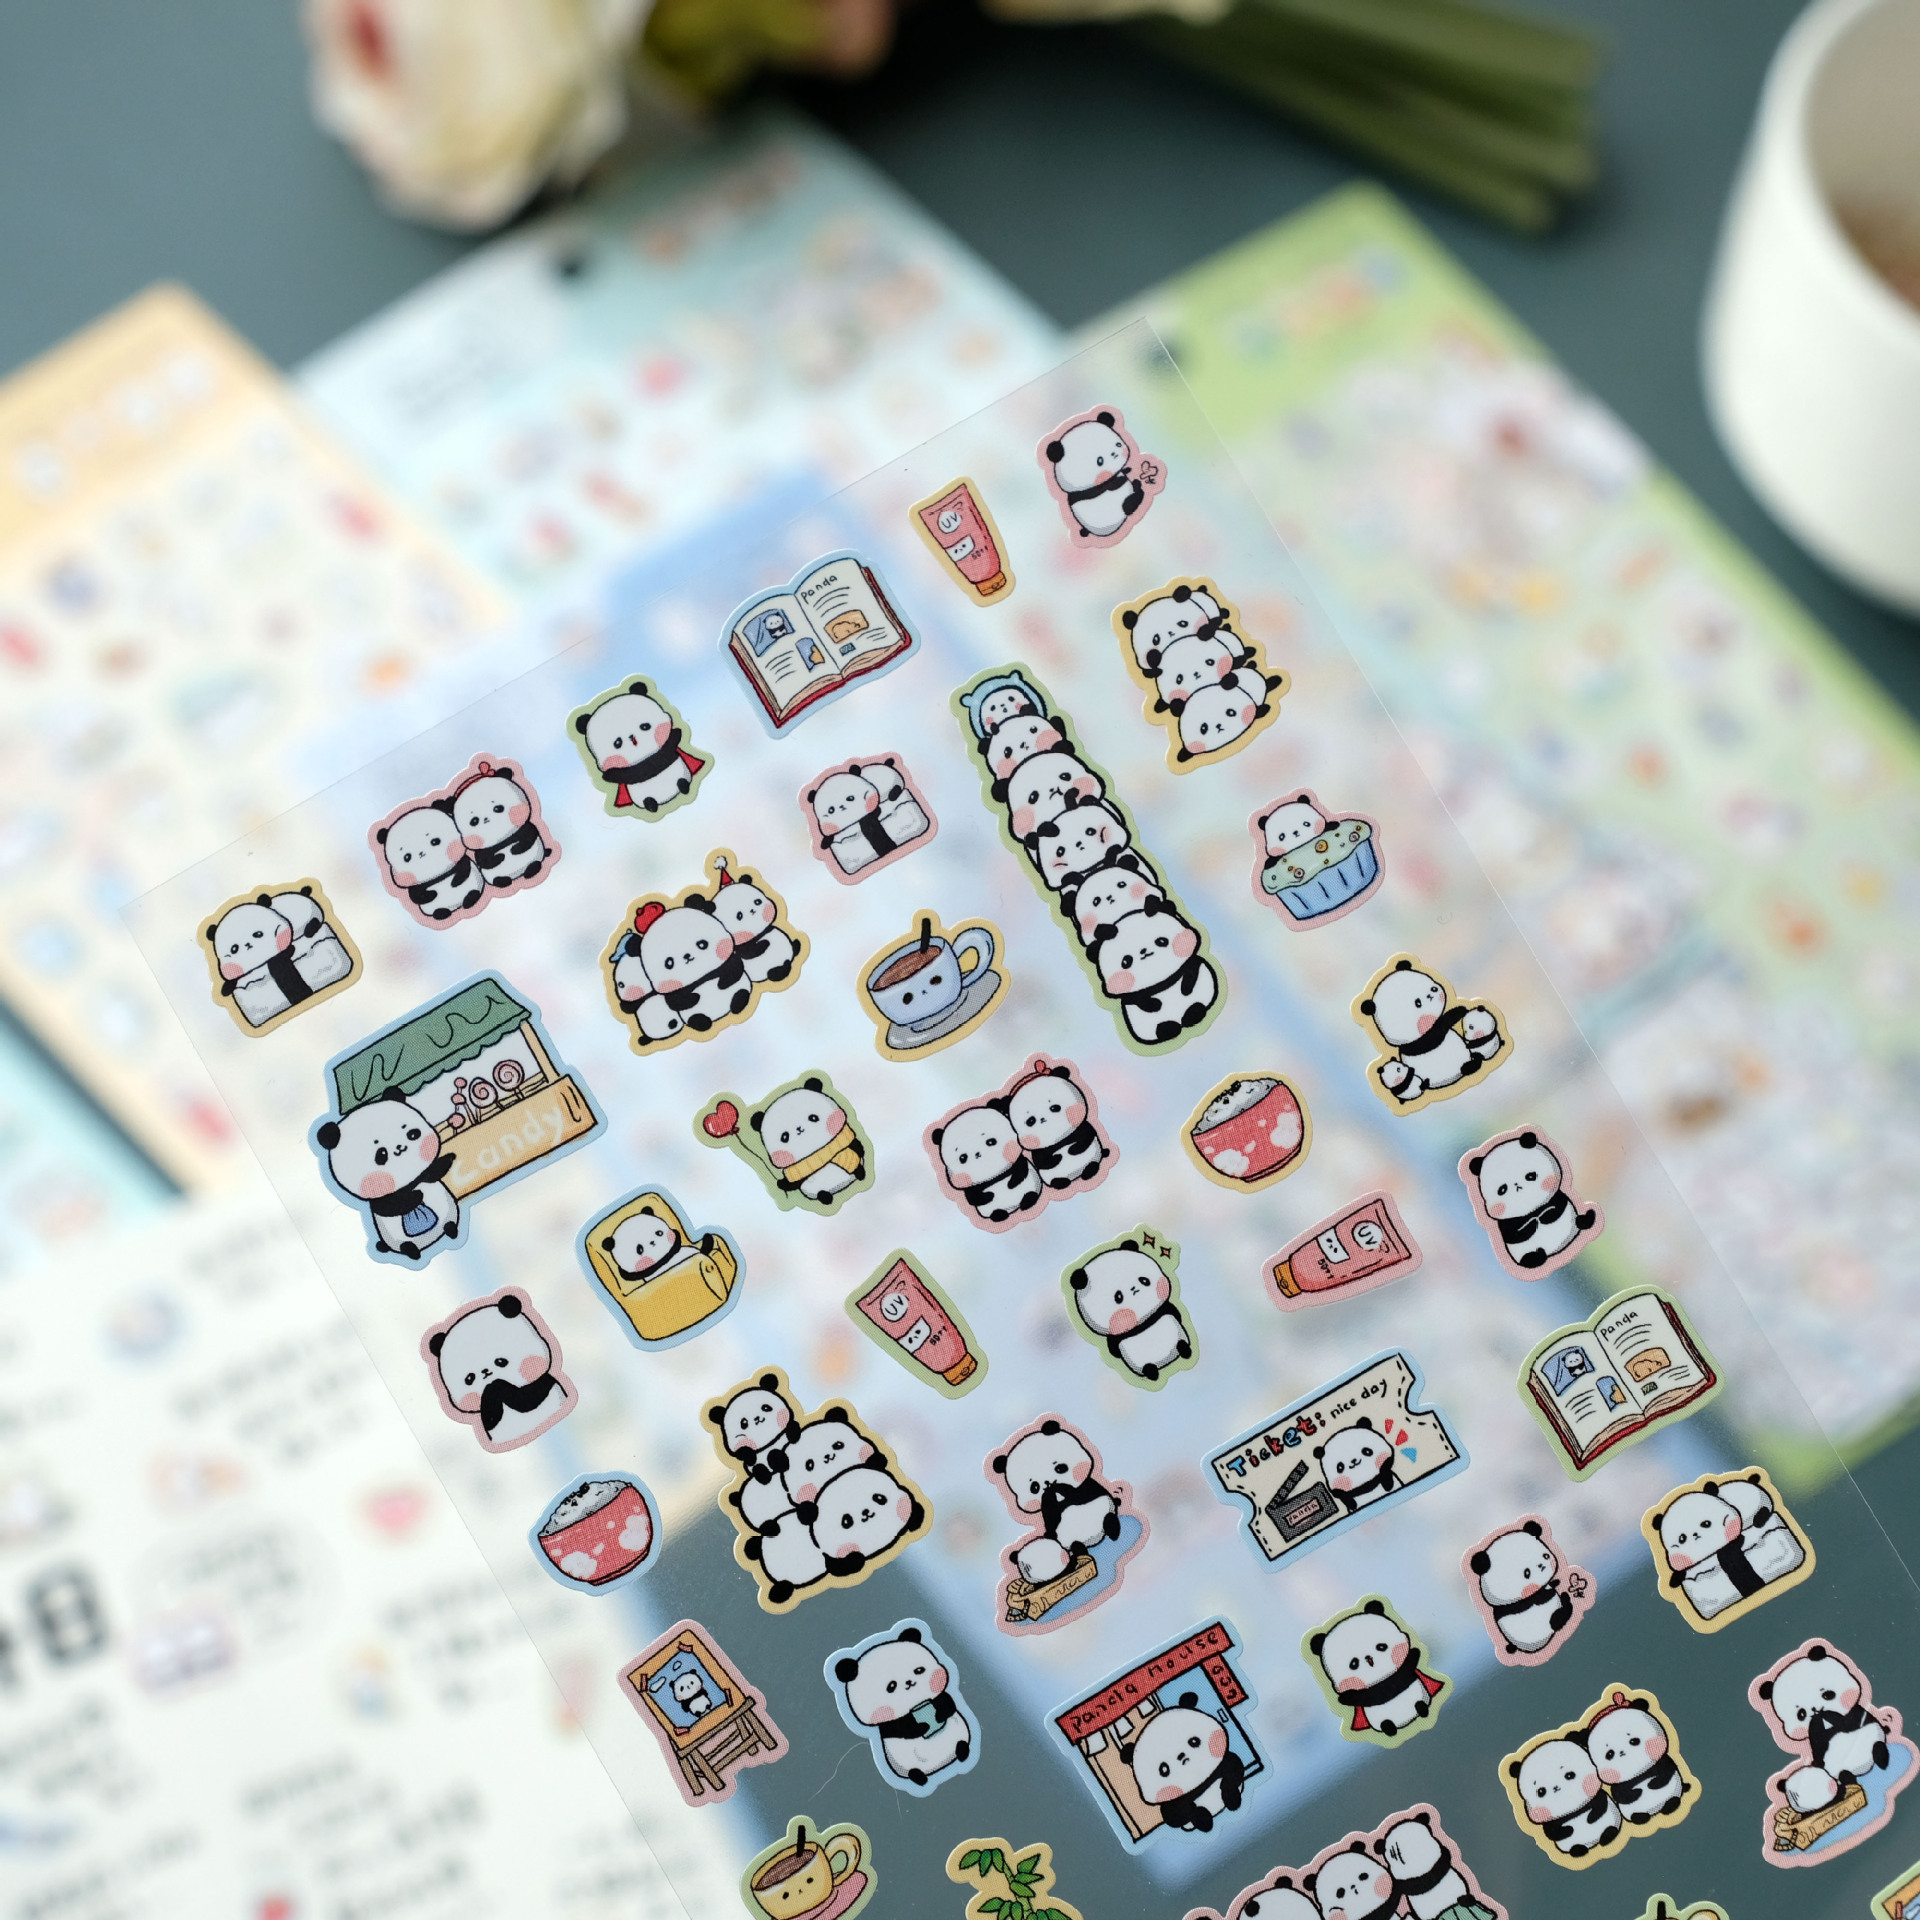 Cute Lutra Otter Shiba Inu Cat Bullet Journal Decorative Stickers Scrapbooking Stick Label Diary Stationery Album Stickers